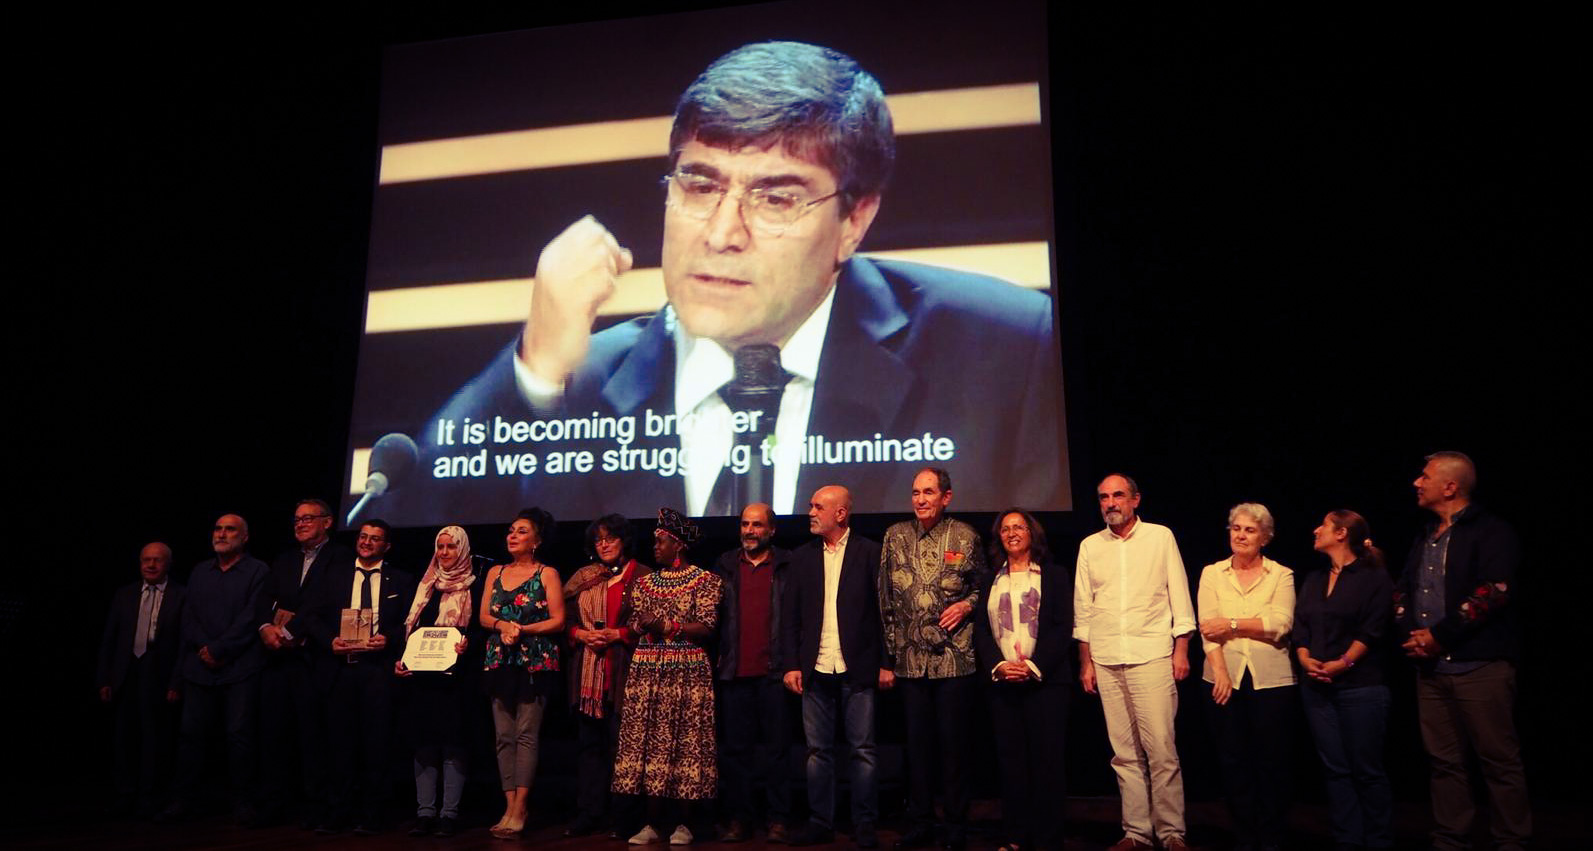 The 2018 International Hrant Dink Award goes to Murat Çelikkan and Mwatana